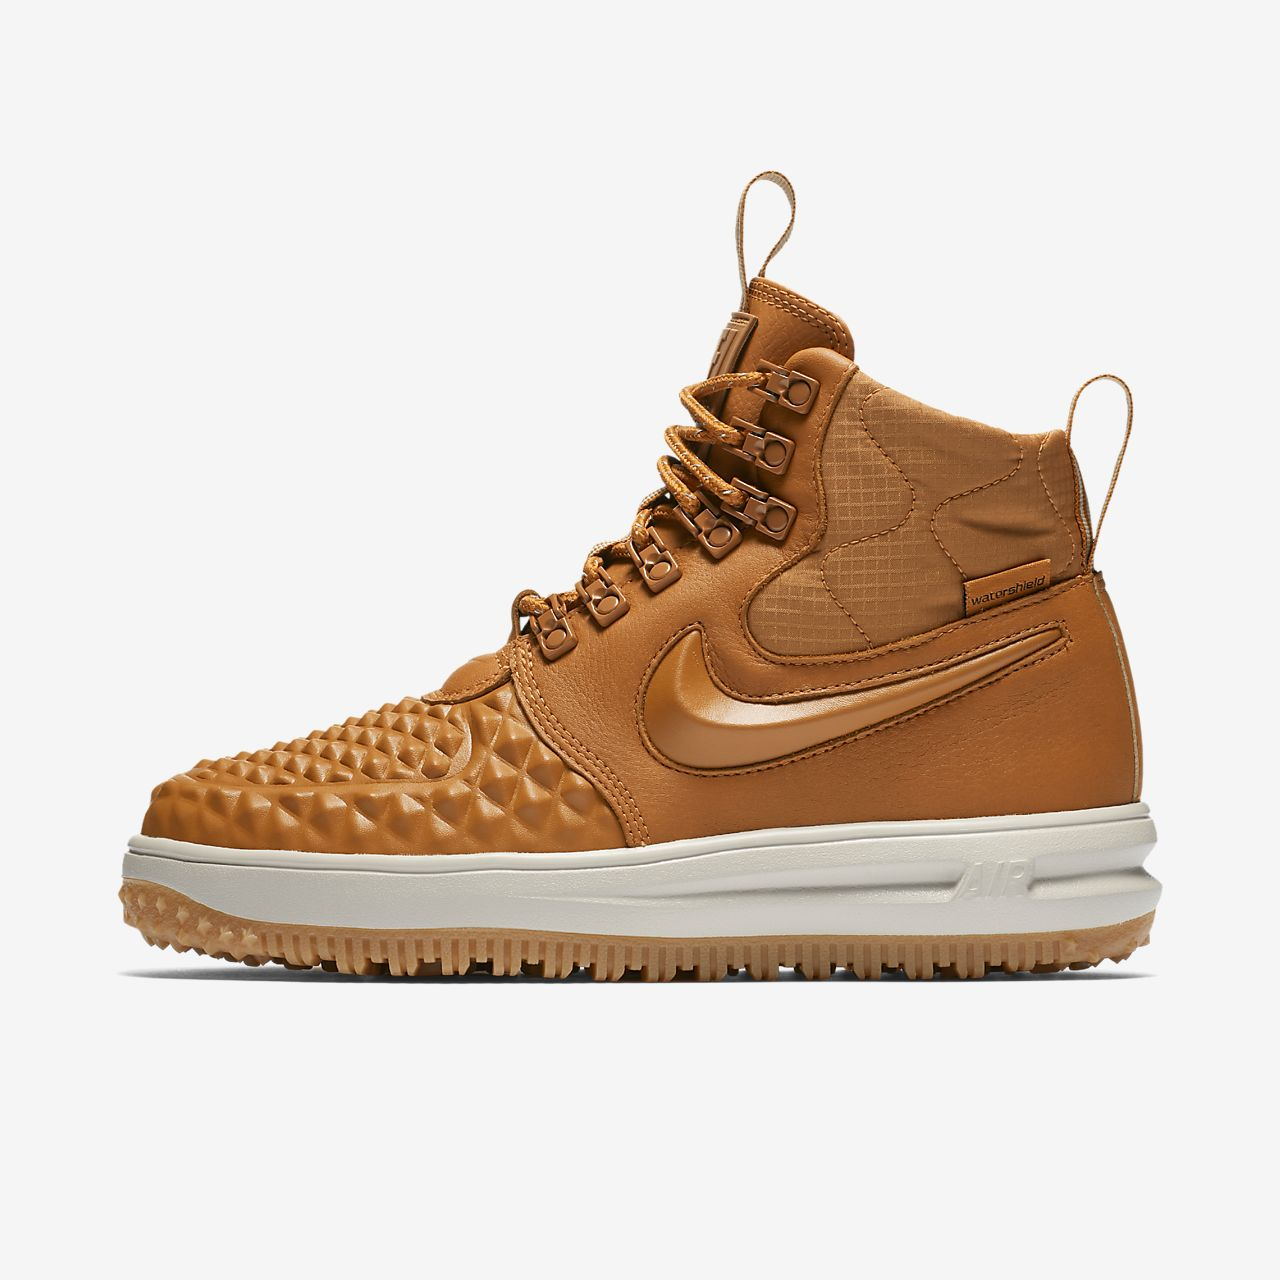 nike 1. nike lunar force 1 duckboot \u002717 women\u0027s boot